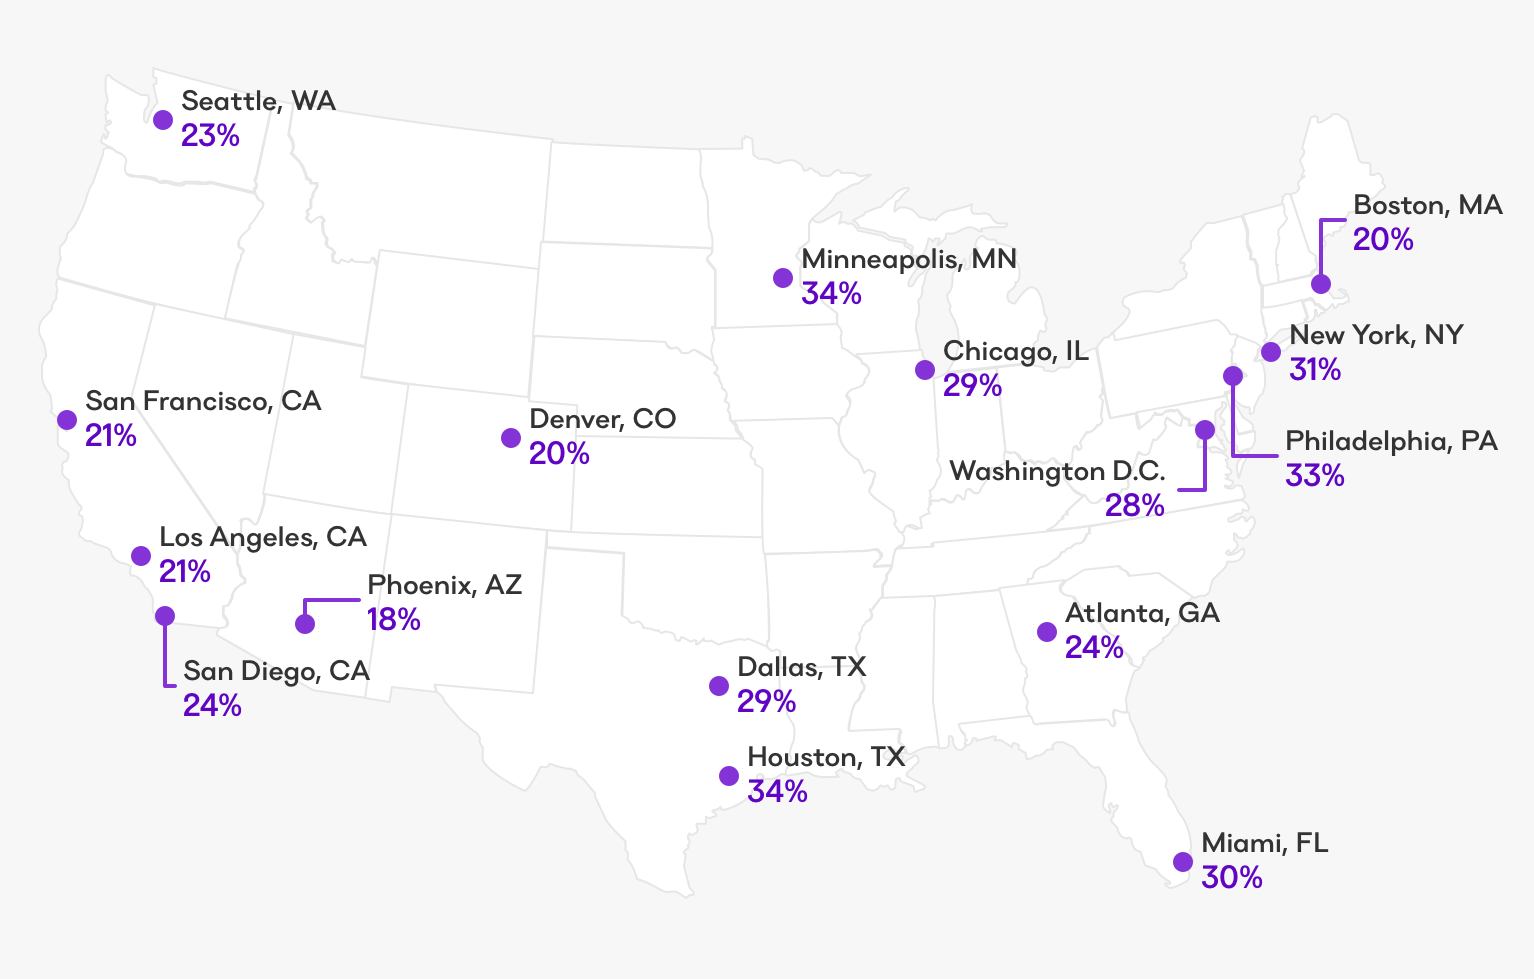 A map shows the propertion of millennials able to buy their own homes per city.